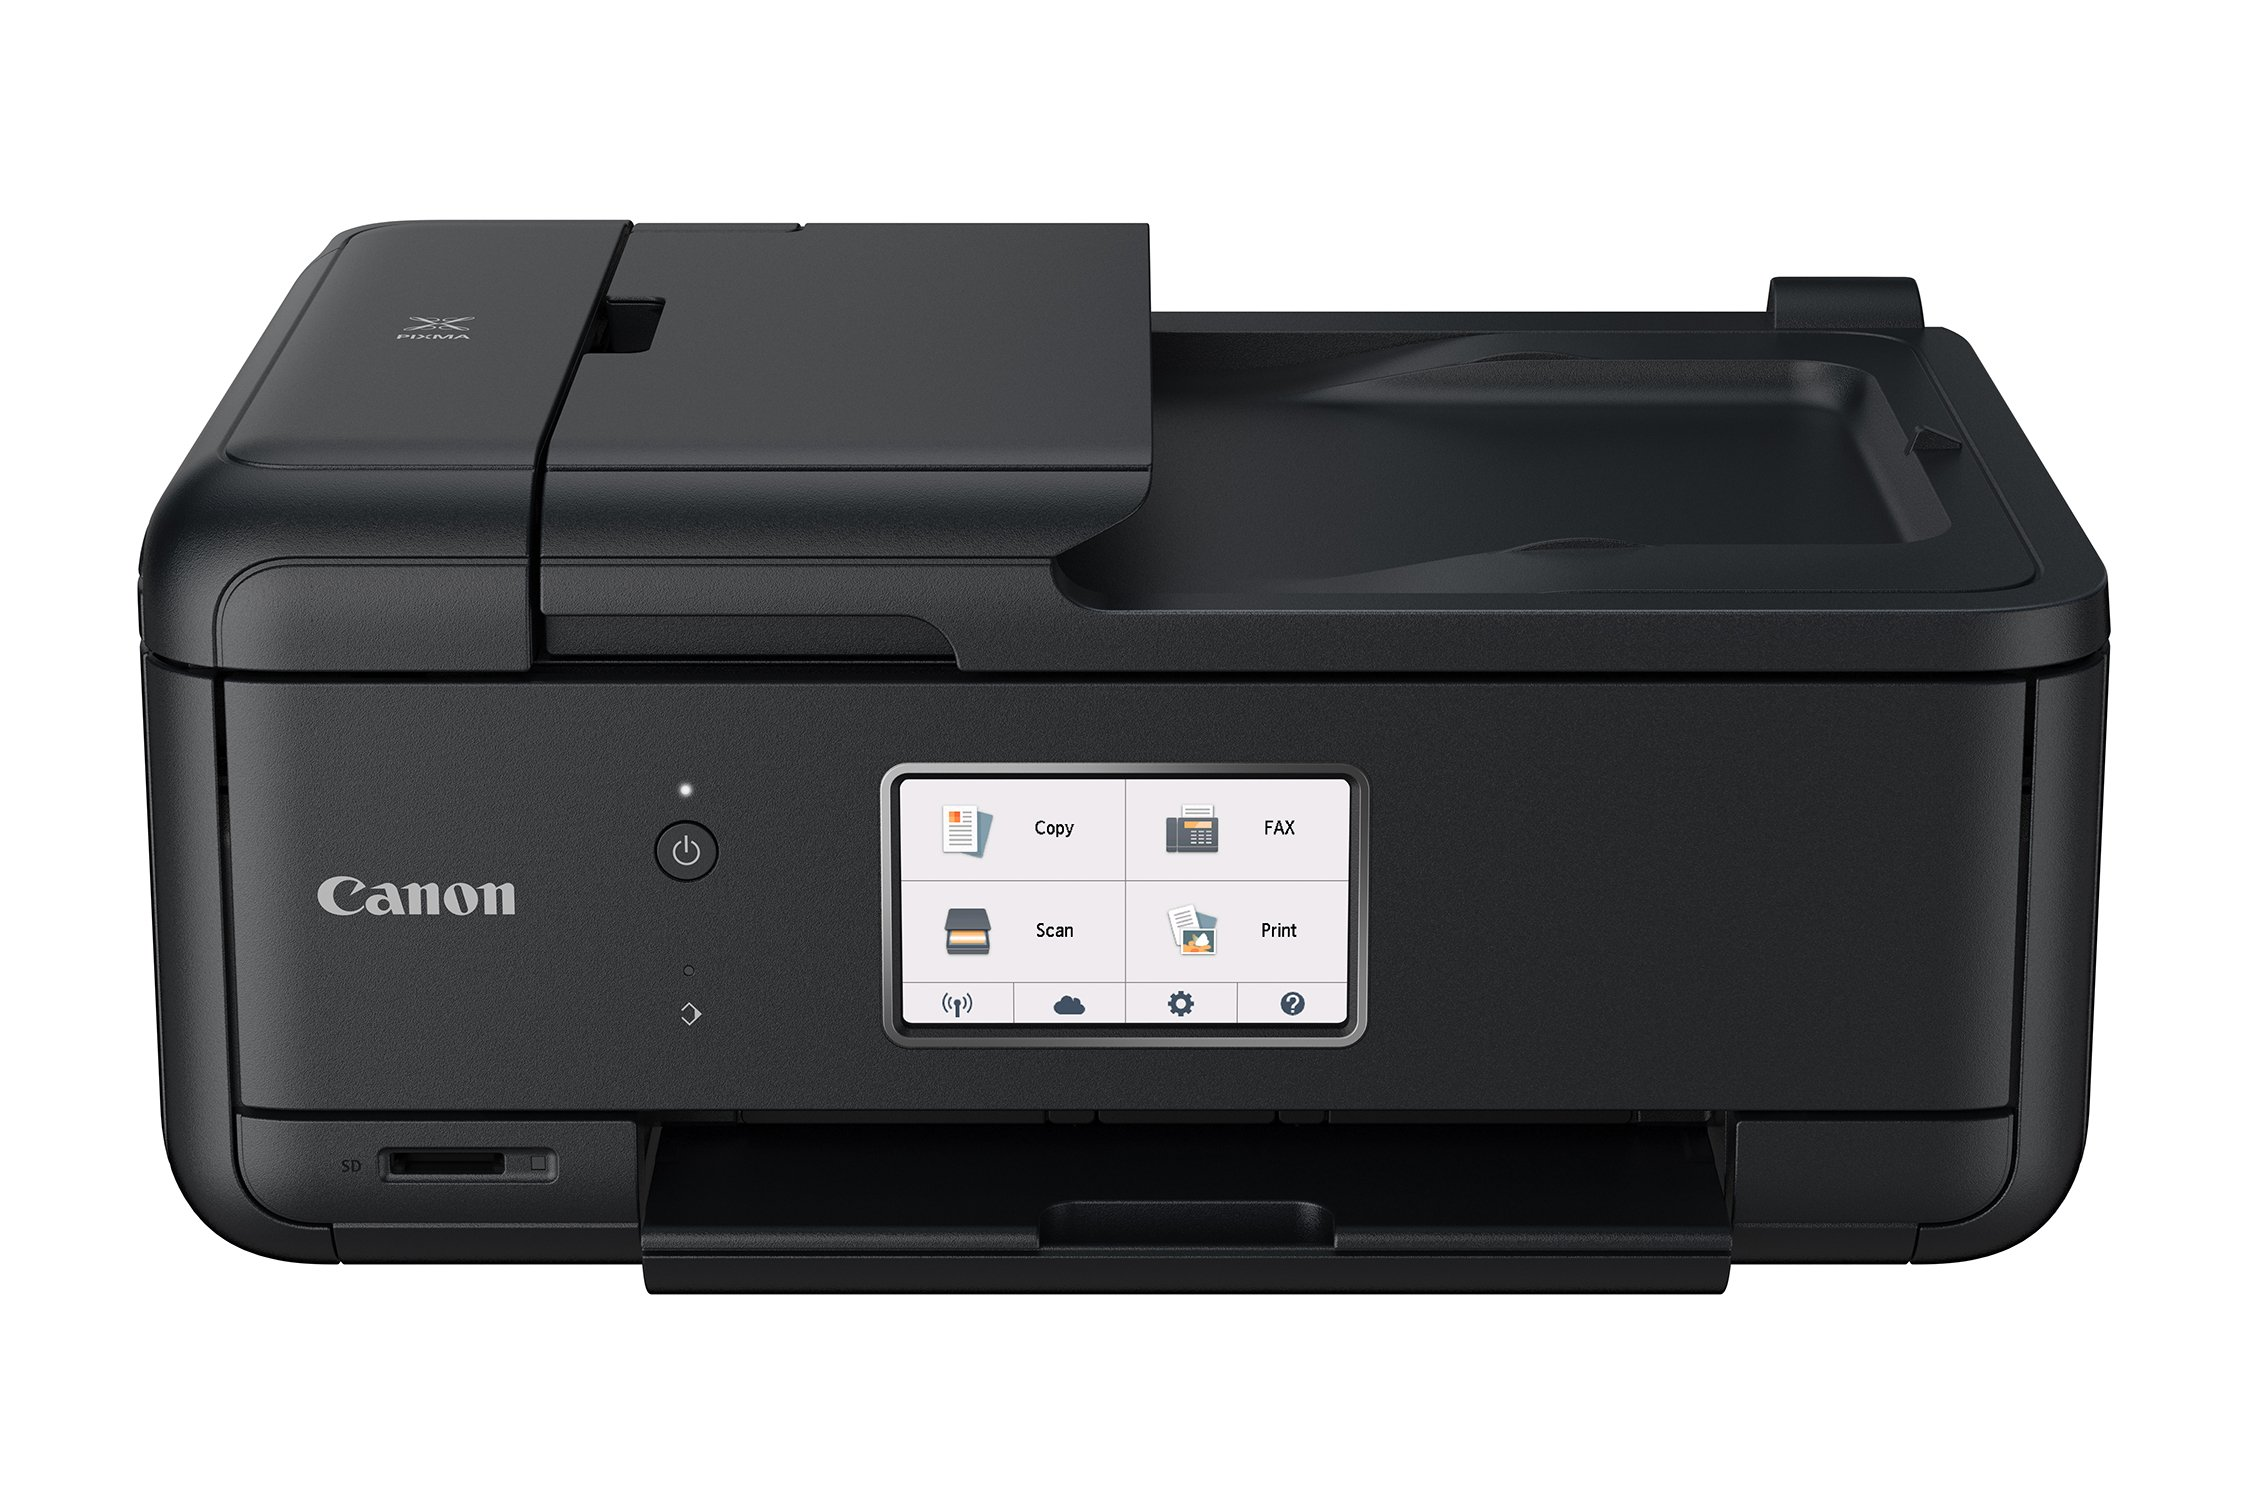 Canon PIXMA TR8520 Wireless All in One Printer | Mobile Printing | Photo and Document Printing, AirPrint(R) and Google Cloud Printing, Black by Canon (Image #6)